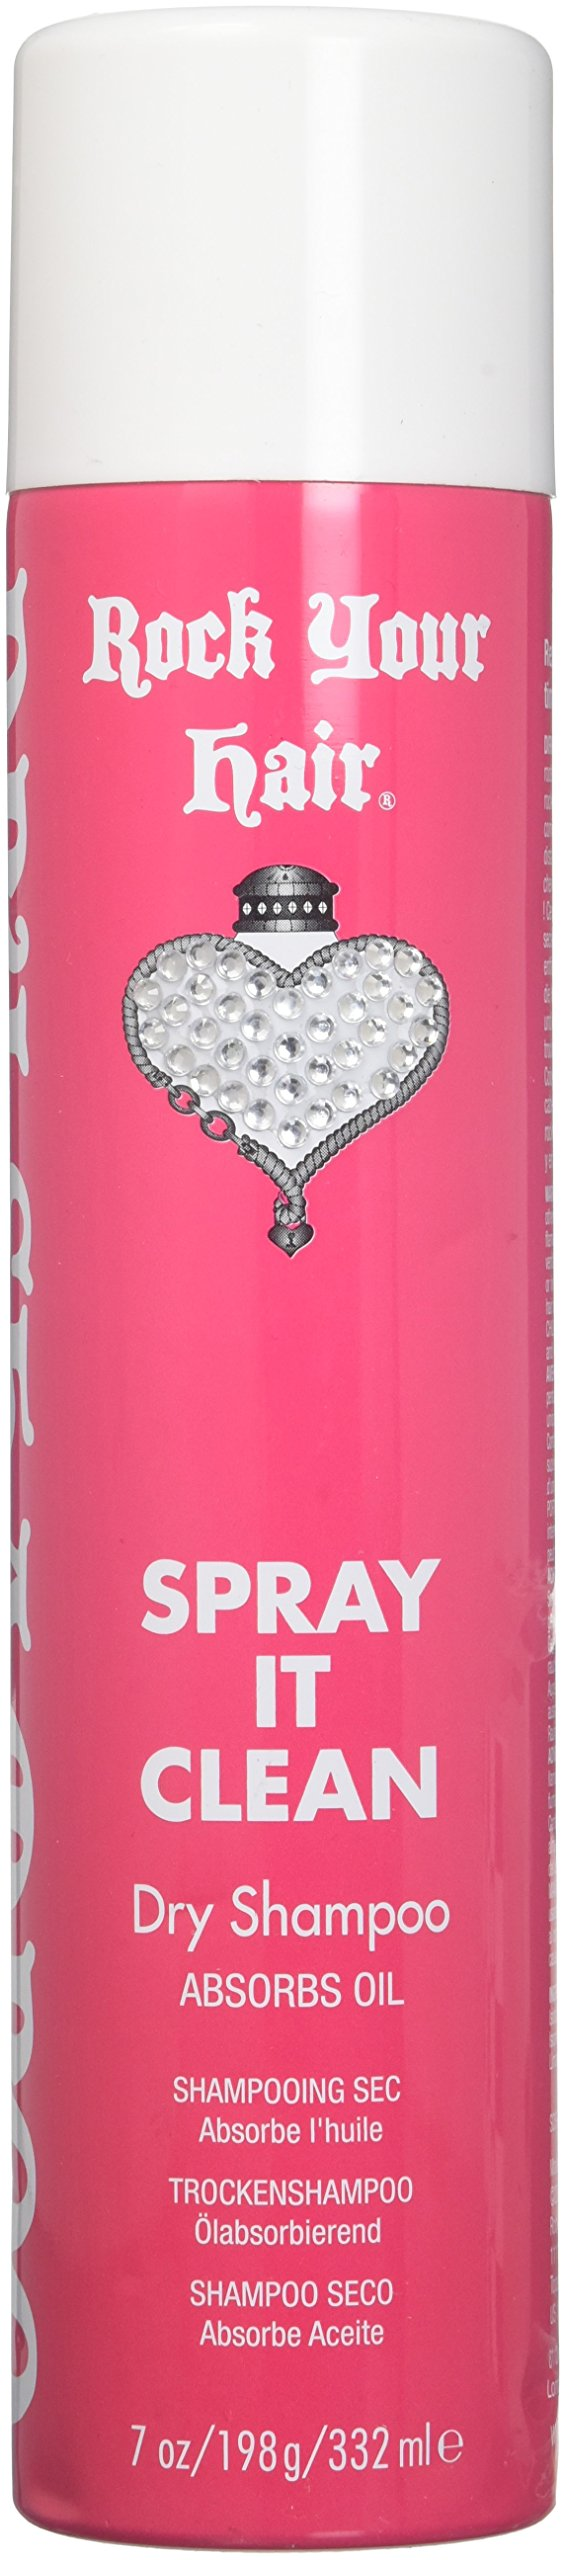 ROCK YOUR HAIR Spray It Clean Instant Dry Shampoo, 7 Ounce